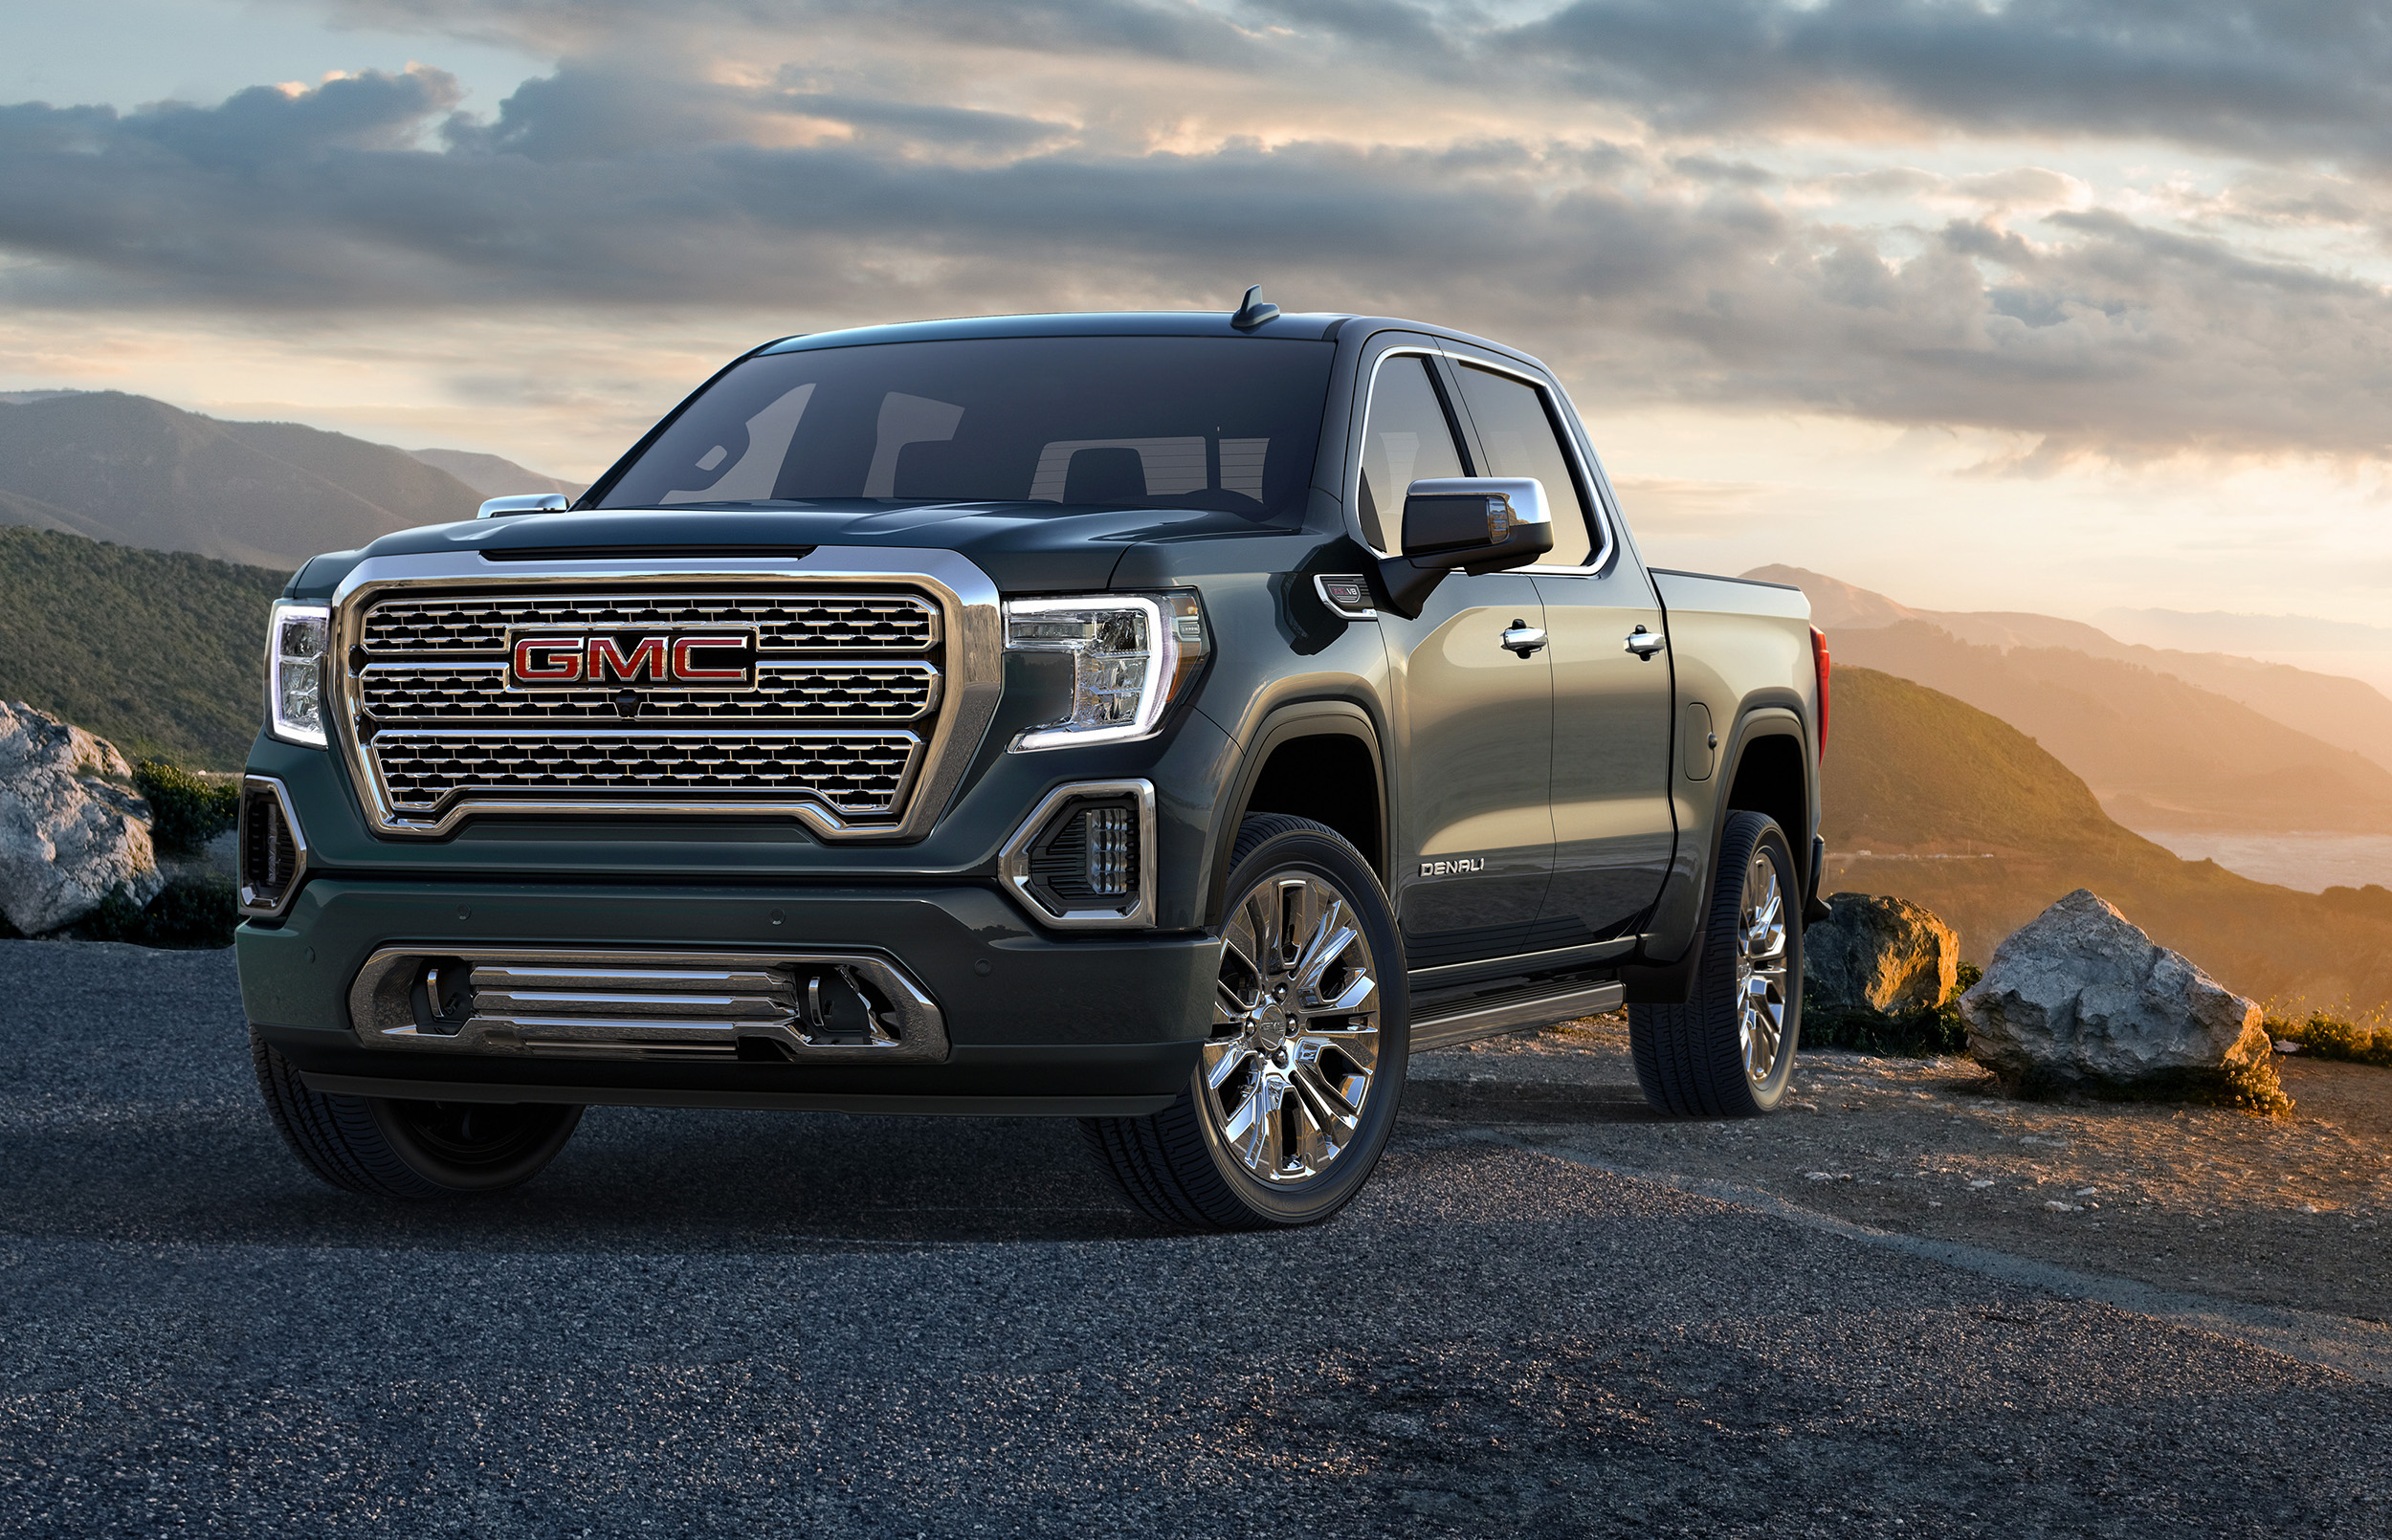 2019 Gmc Sierra 1500 Tailgate Of The Future